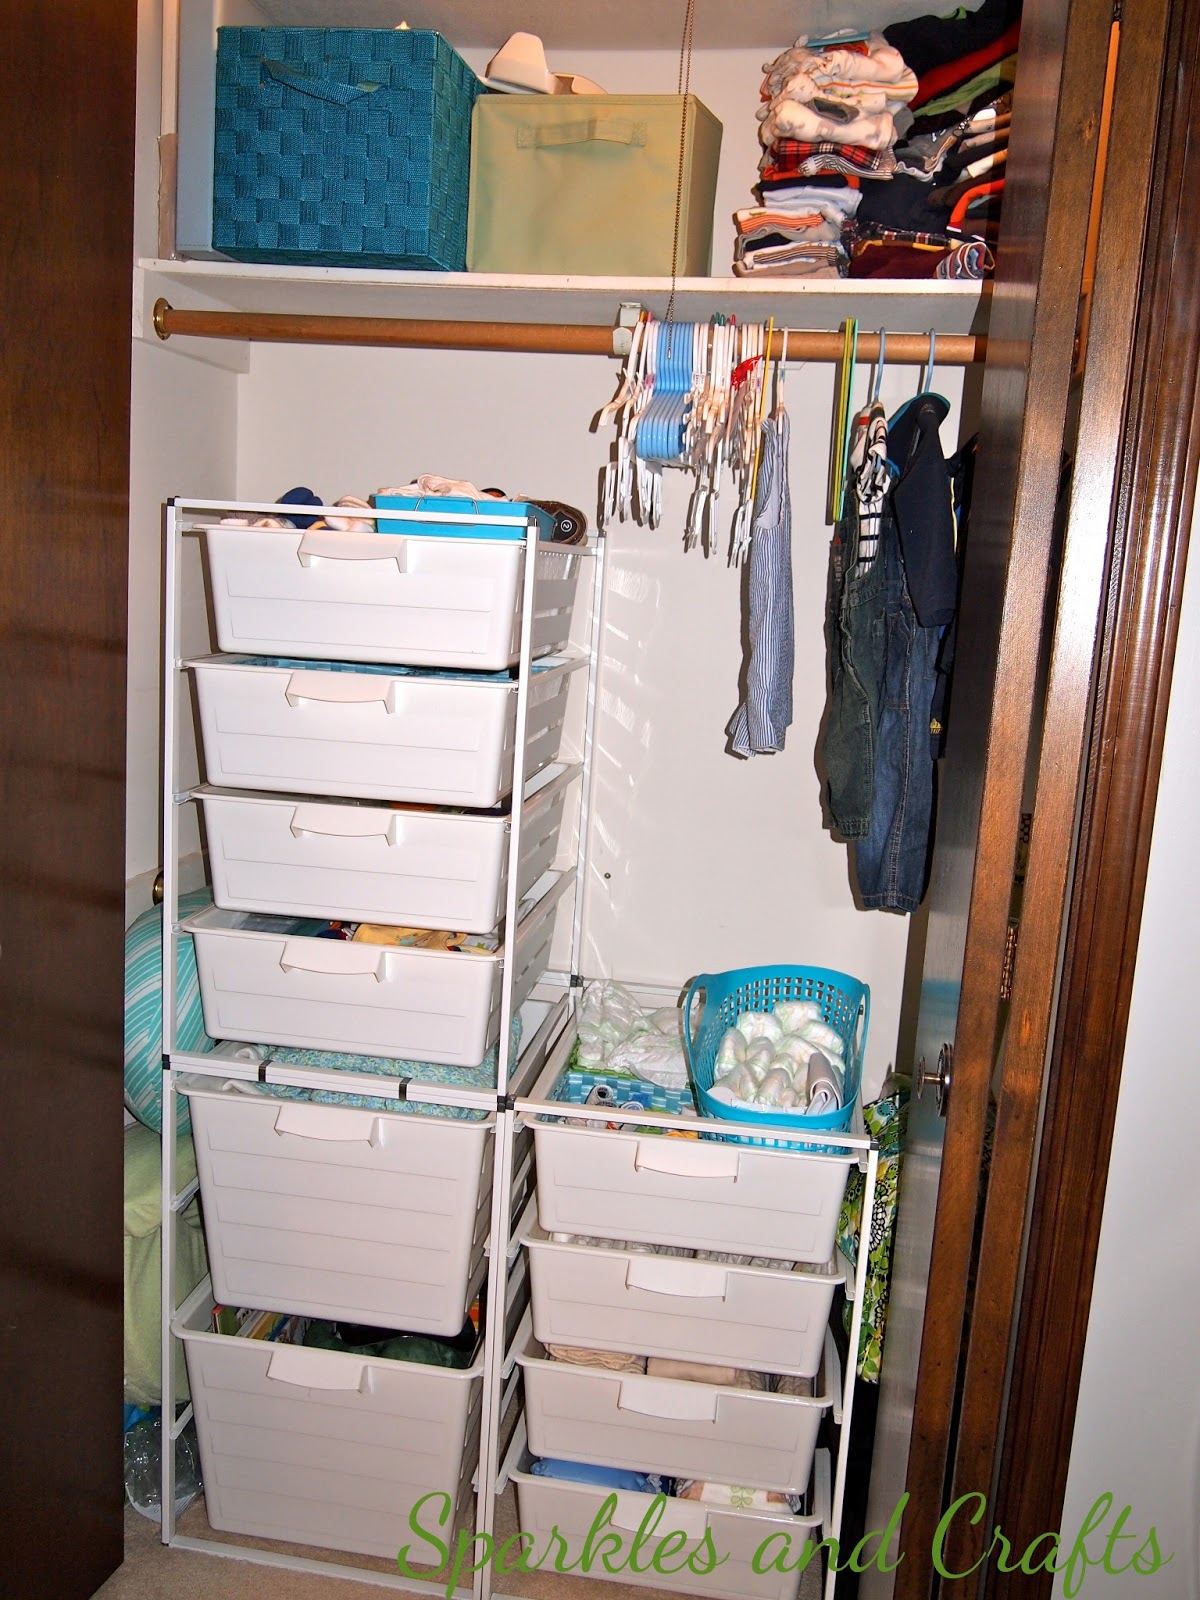 Sparkles and Crafts: Baby Boy Closet Organization